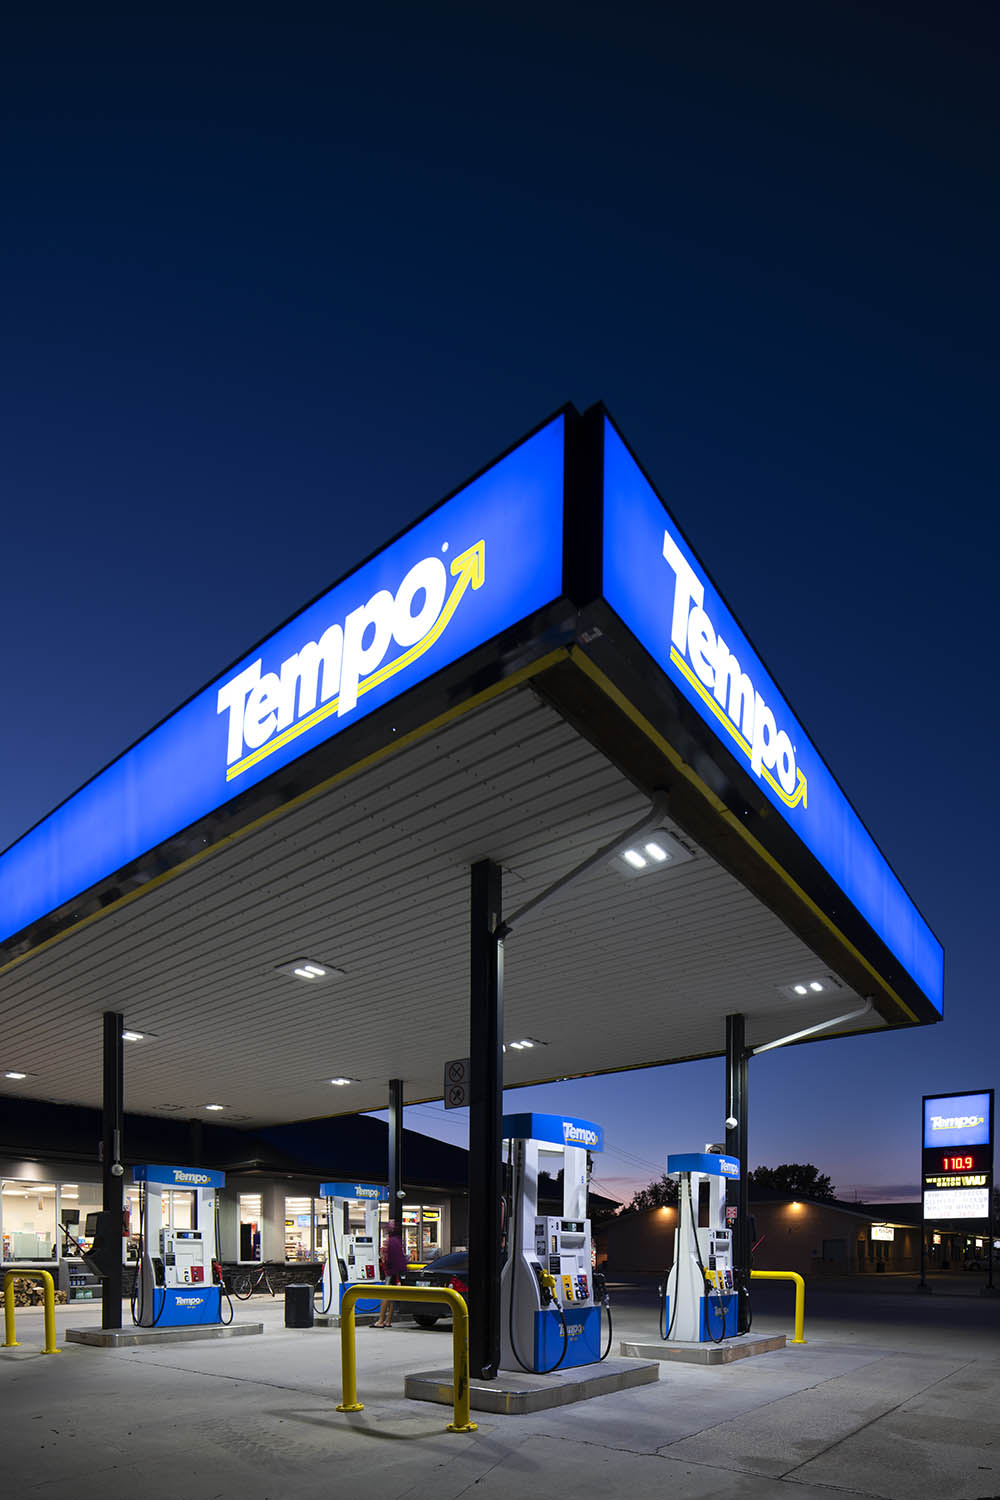 A vertical of the gas station at night. © Robert Lowdon